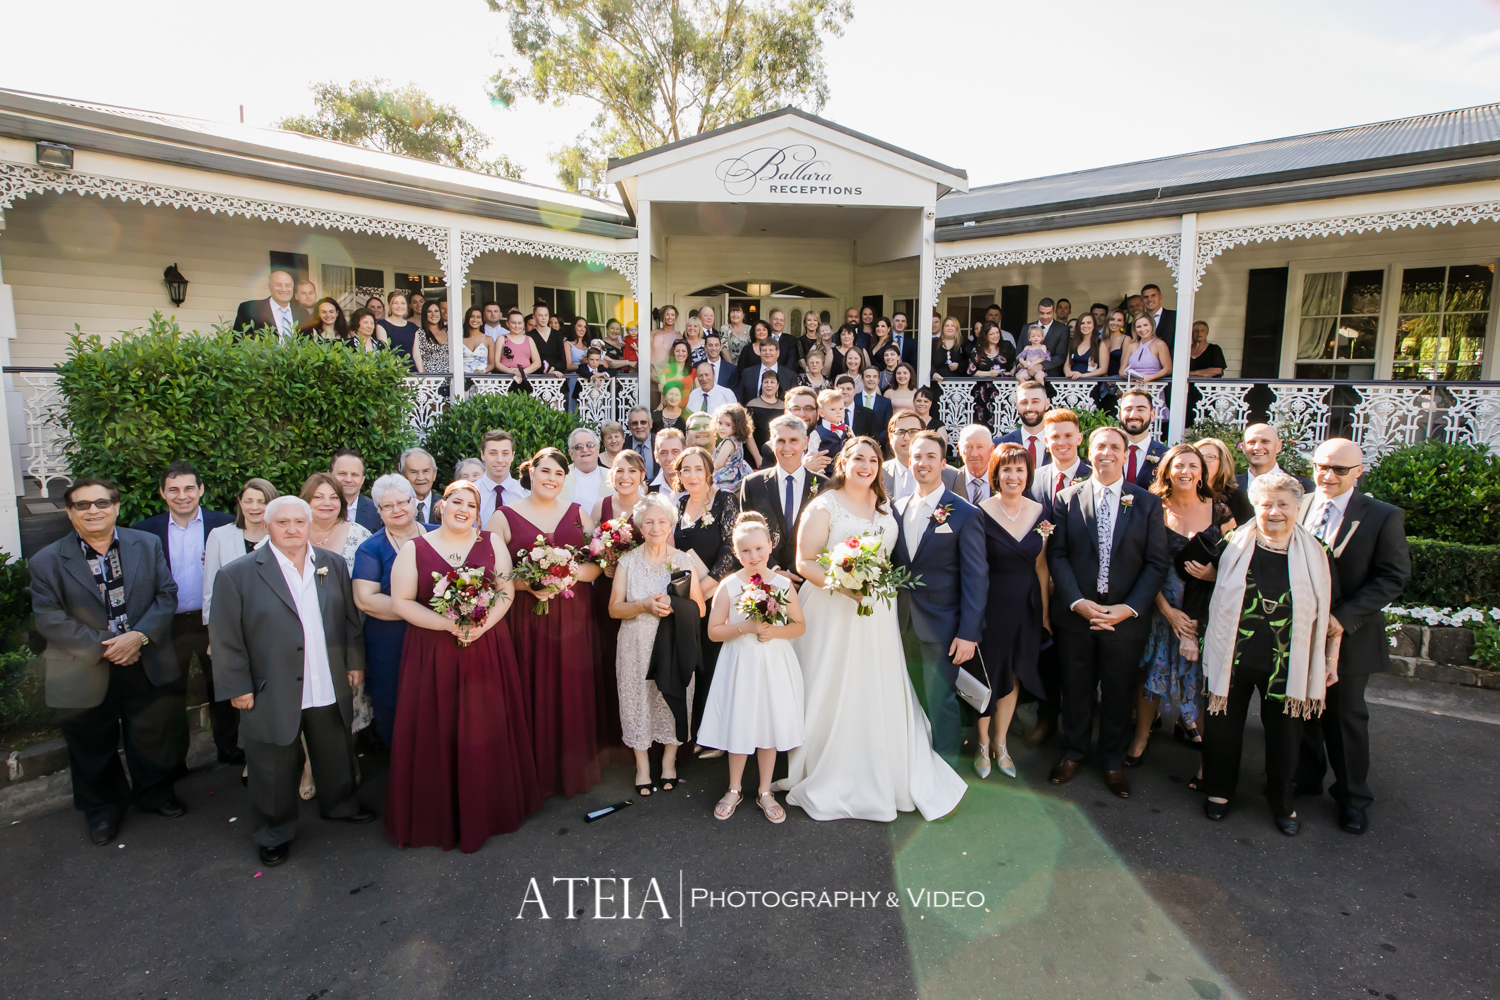 , Ballara Receptions Wedding Photography Melbourne by ATEIA Photography & Video